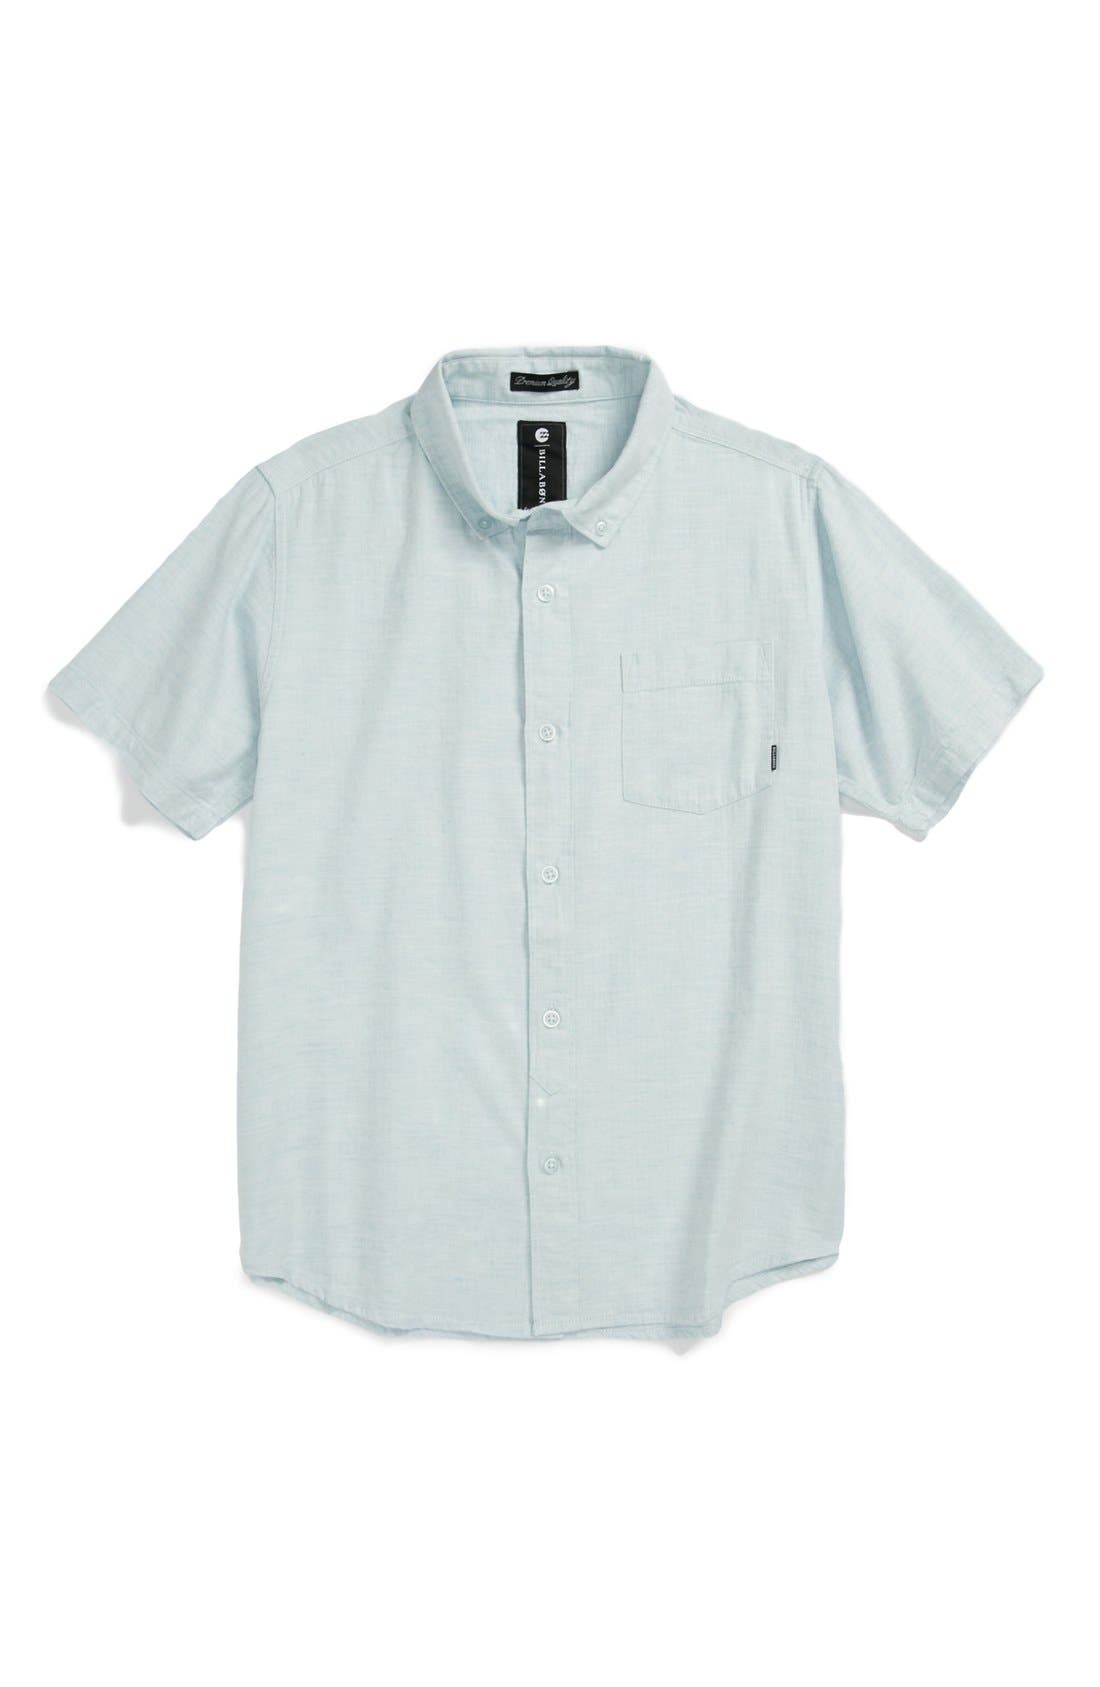 Main Image - Billabong 'All Day' Chambray Shirt (Big Boys)